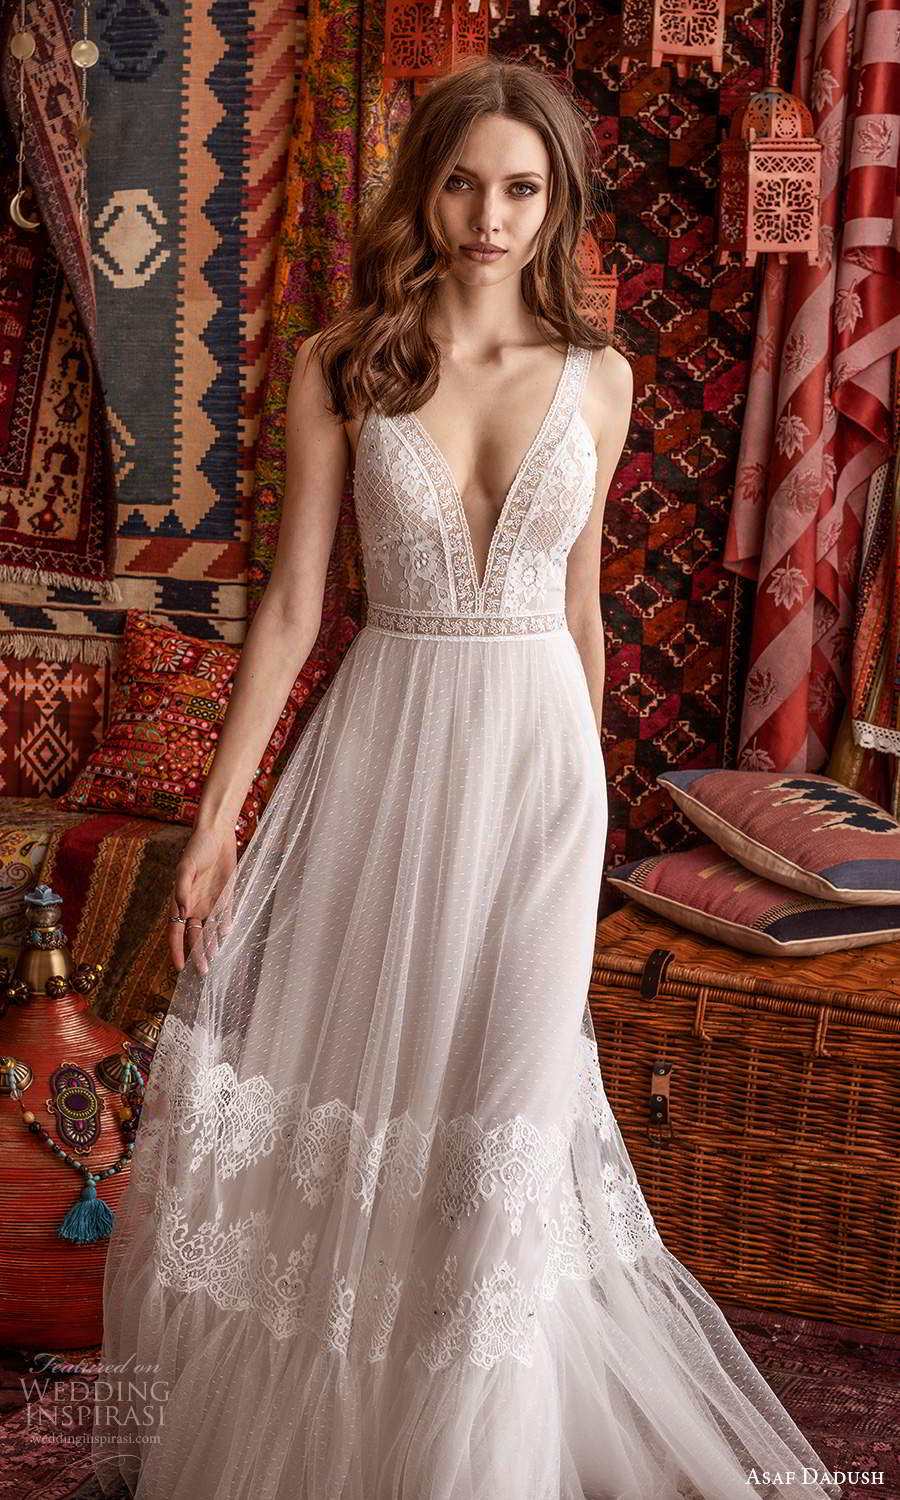 asaf dadush 2021 bridal sleeveless thick straps plunging v neckline embellished lace a line ball gown wedding dress (7) zv